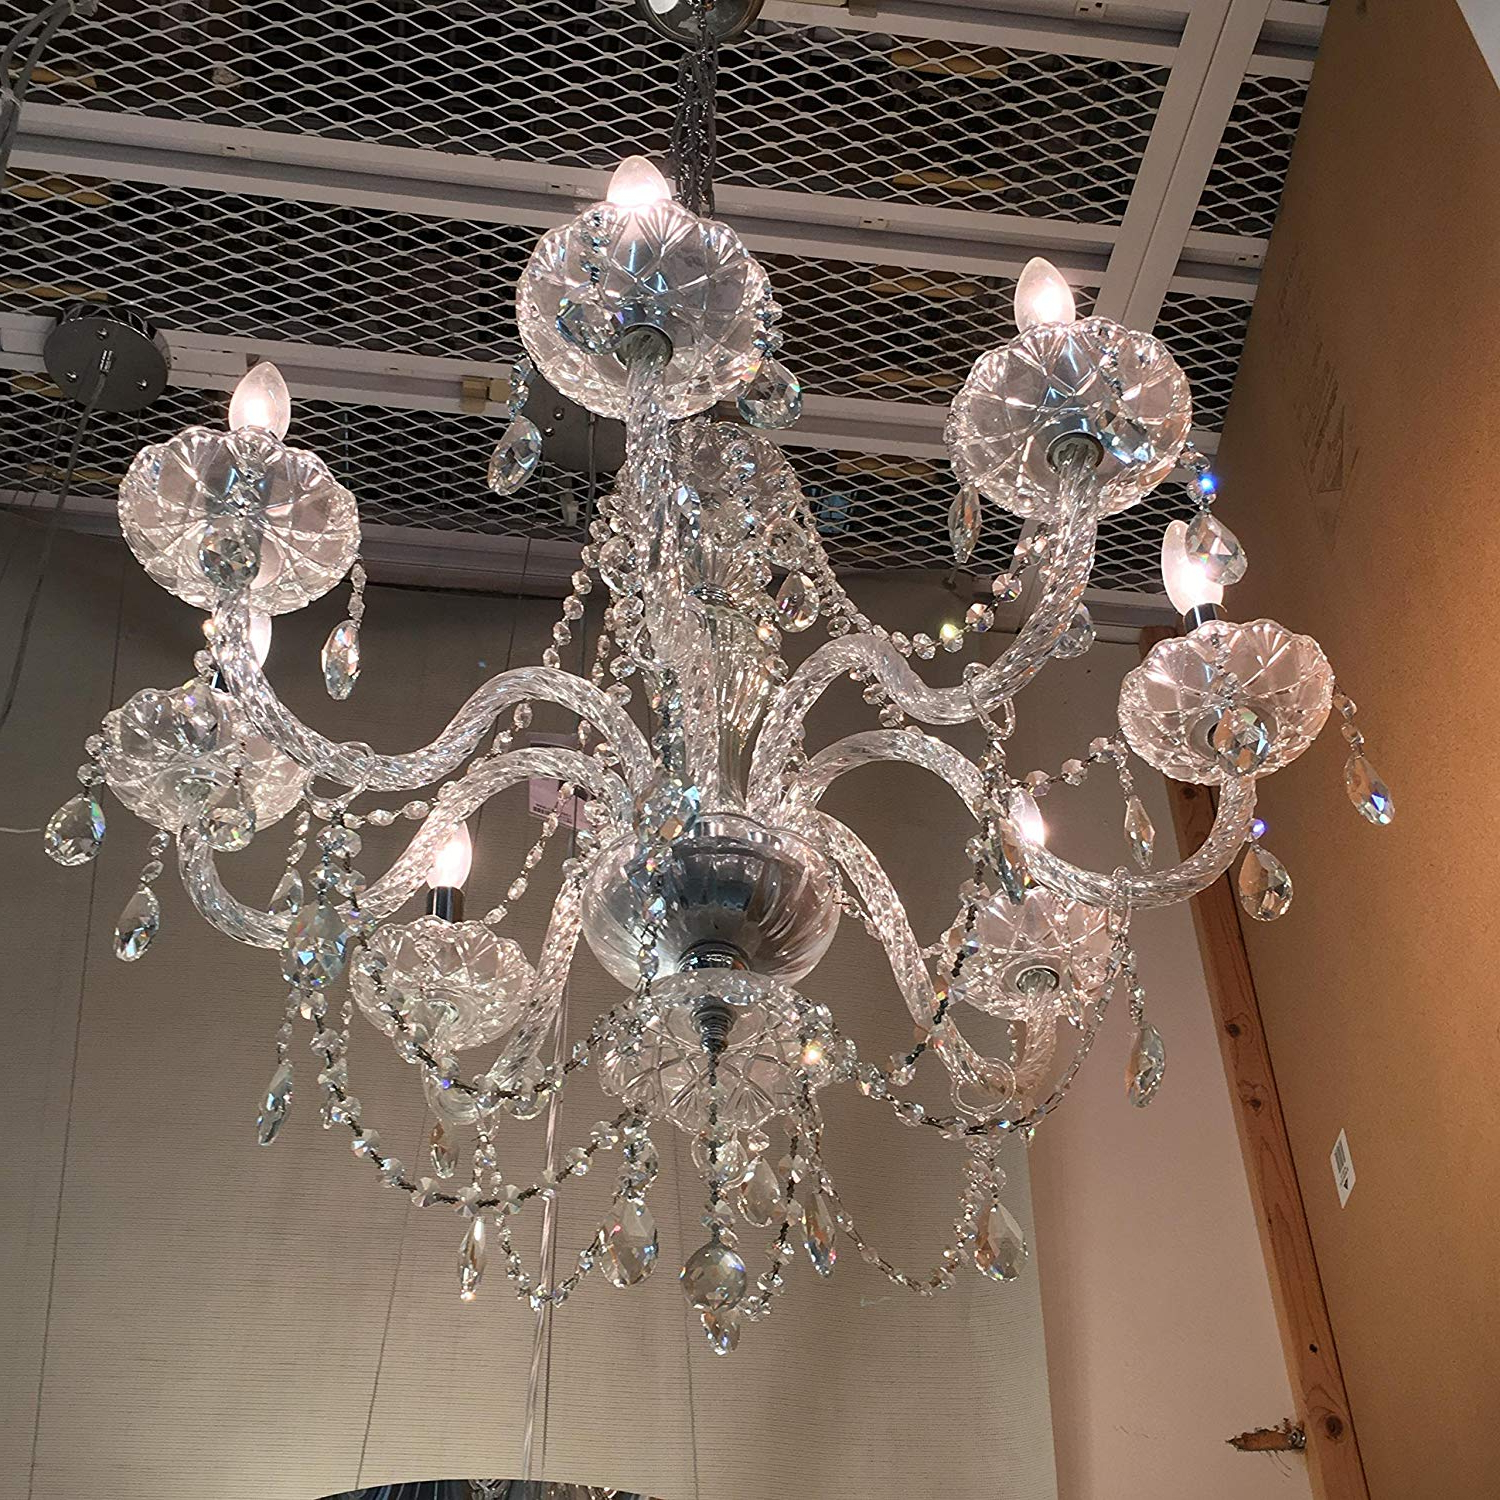 2019 Amazon: 8 Light Crystal Chandelier: Home & Kitchen Within Gracelyn 8 Light Kitchen Island Pendants (View 16 of 25)